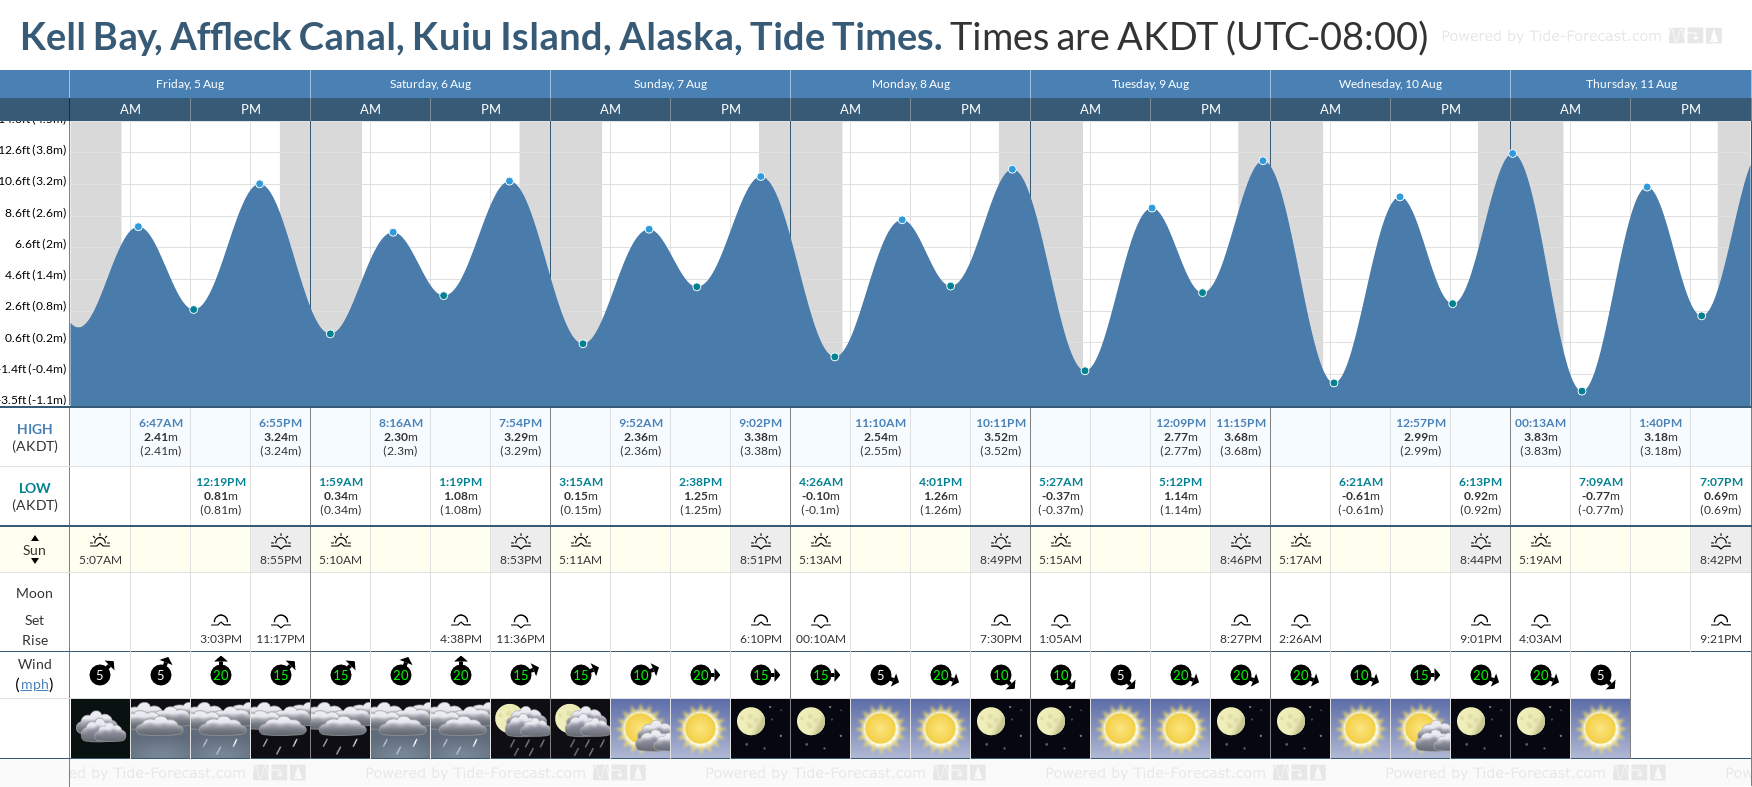 Kell Bay, Affleck Canal, Kuiu Island, Alaska Tide Chart including high and low tide tide times for the next 7 days